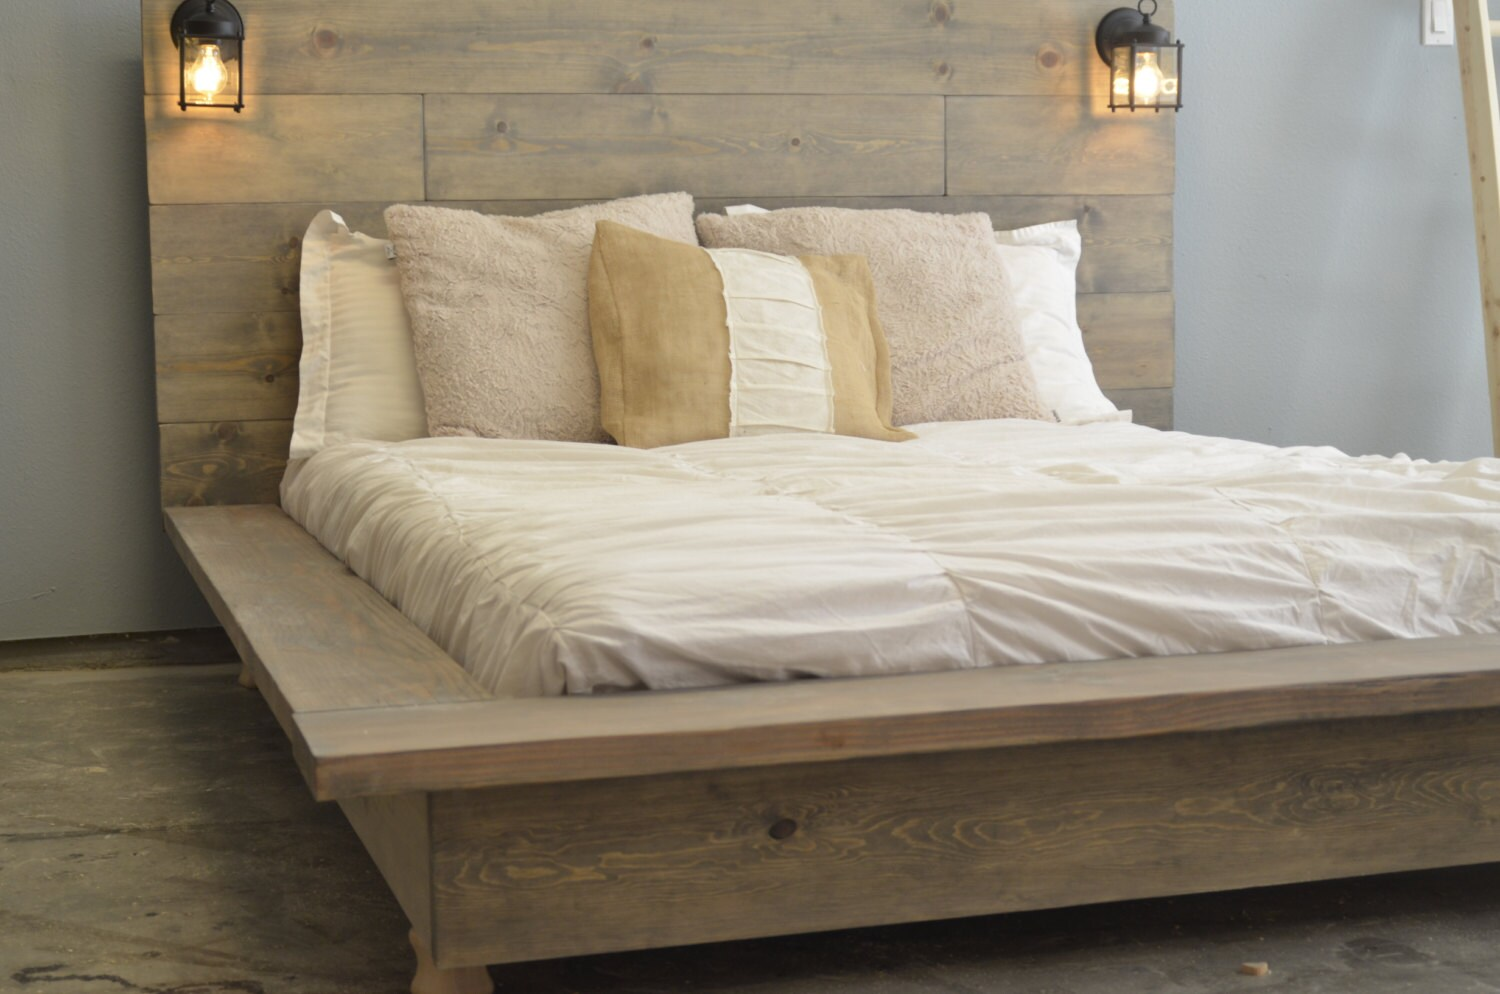 Floating Wood Platform Bed Frame With Lighted Etsy